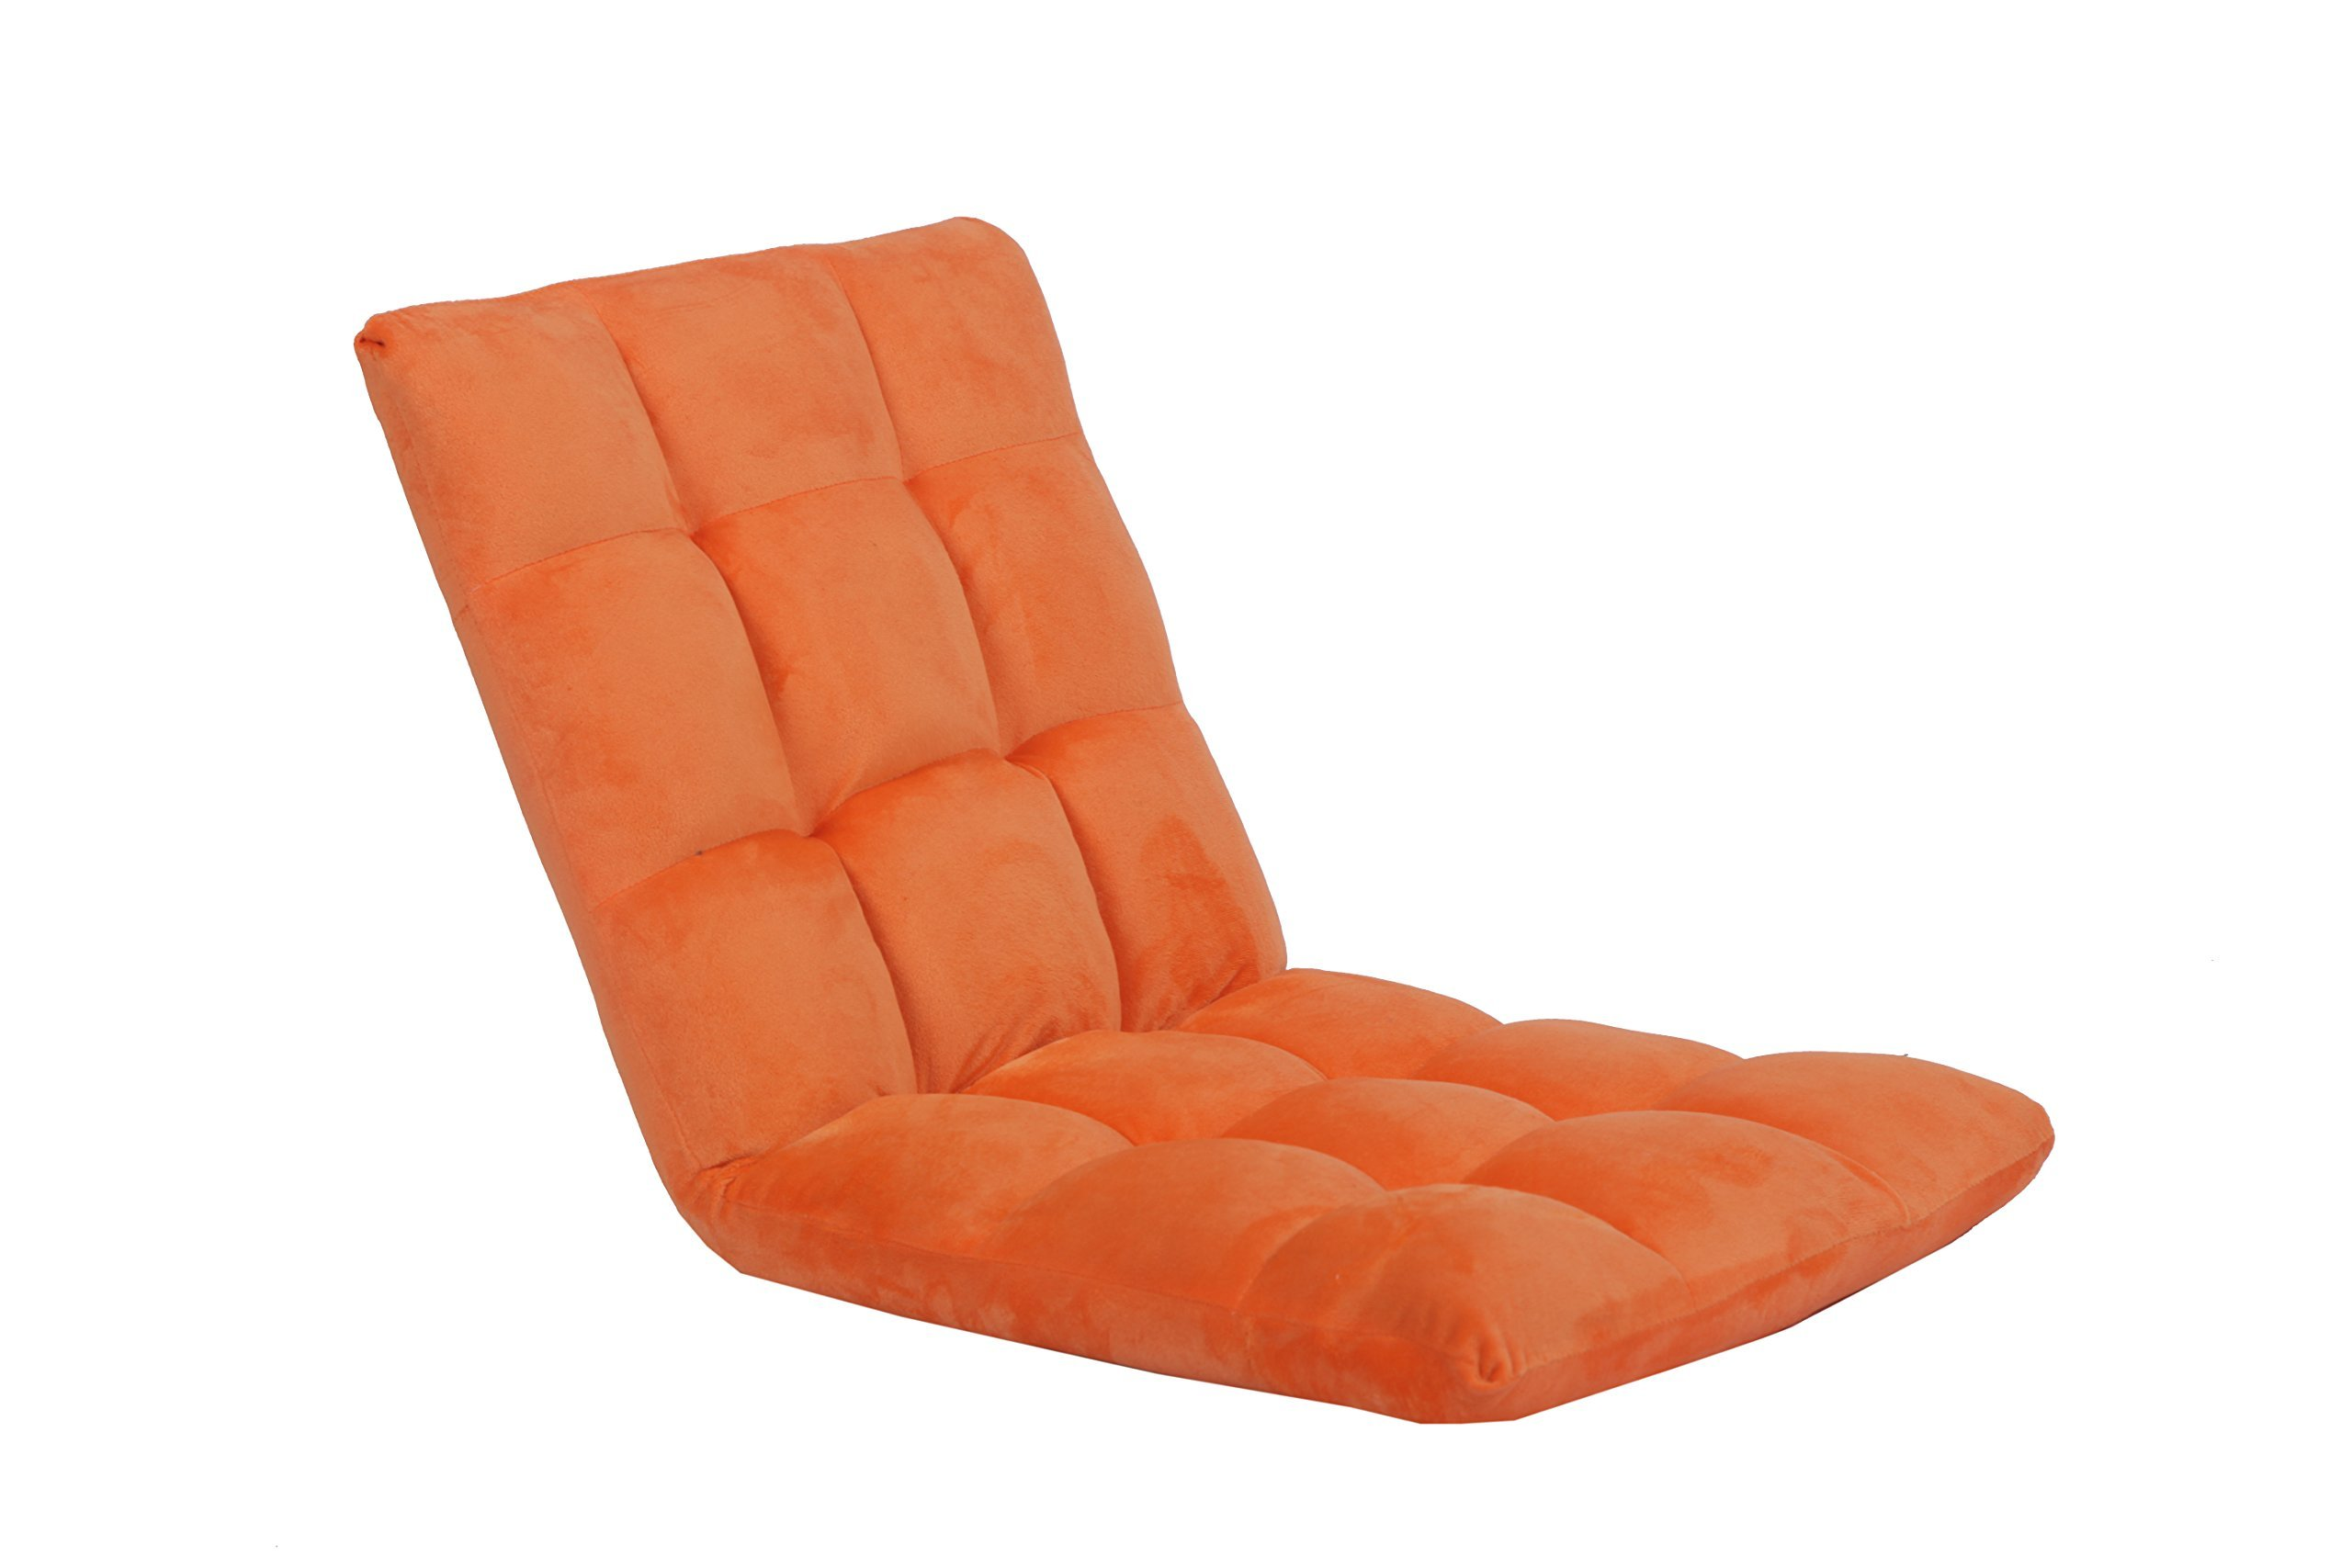 Porpora Folding Floor Chair Sofa Home Essential Orange